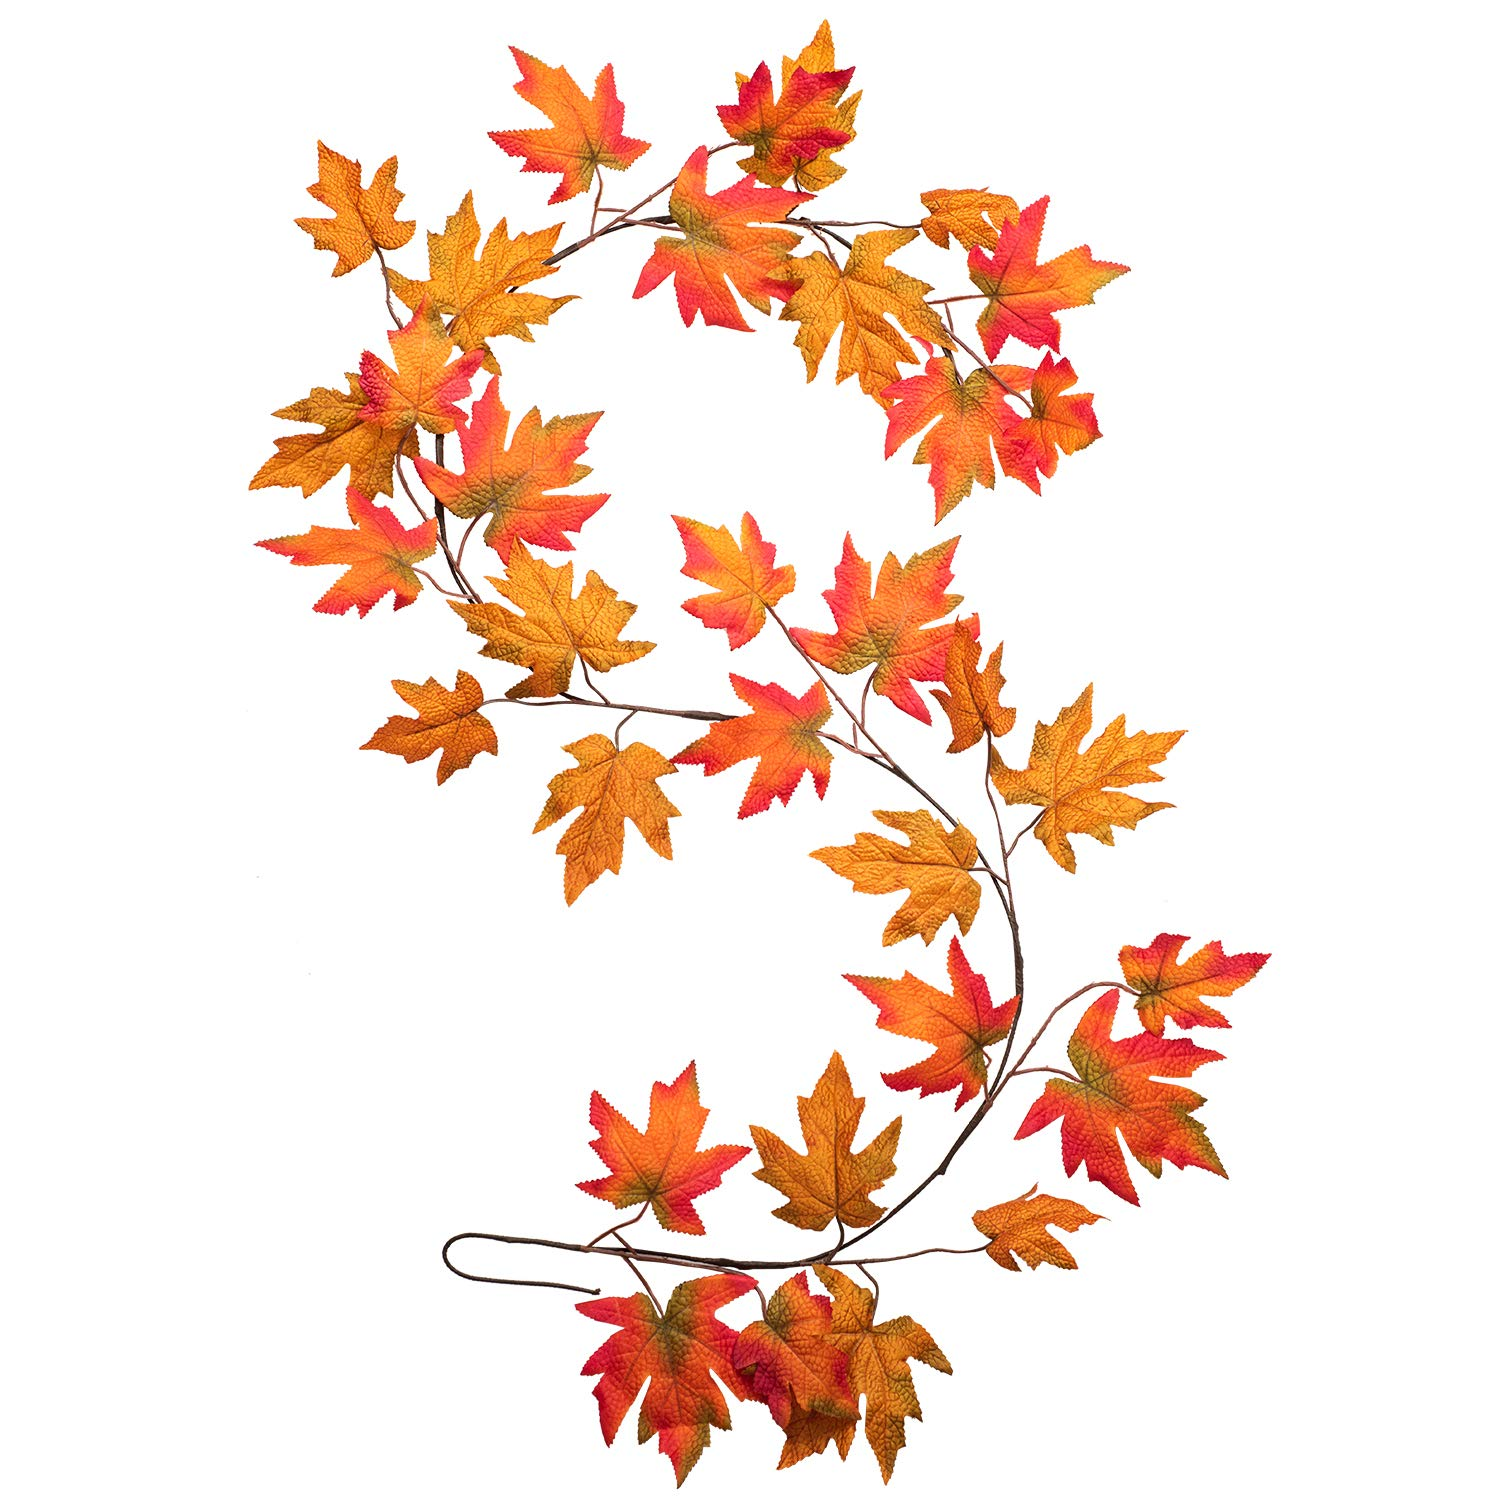 Coolmade 1 Pack Fall Maple Leaf Garland 6ft Artificial Foliage Garland Autumn Hanging Fall Leave Vines For Indoor Outdoor Wedding Thanksgiving Dinner Party Decor Walmart Com Walmart Com